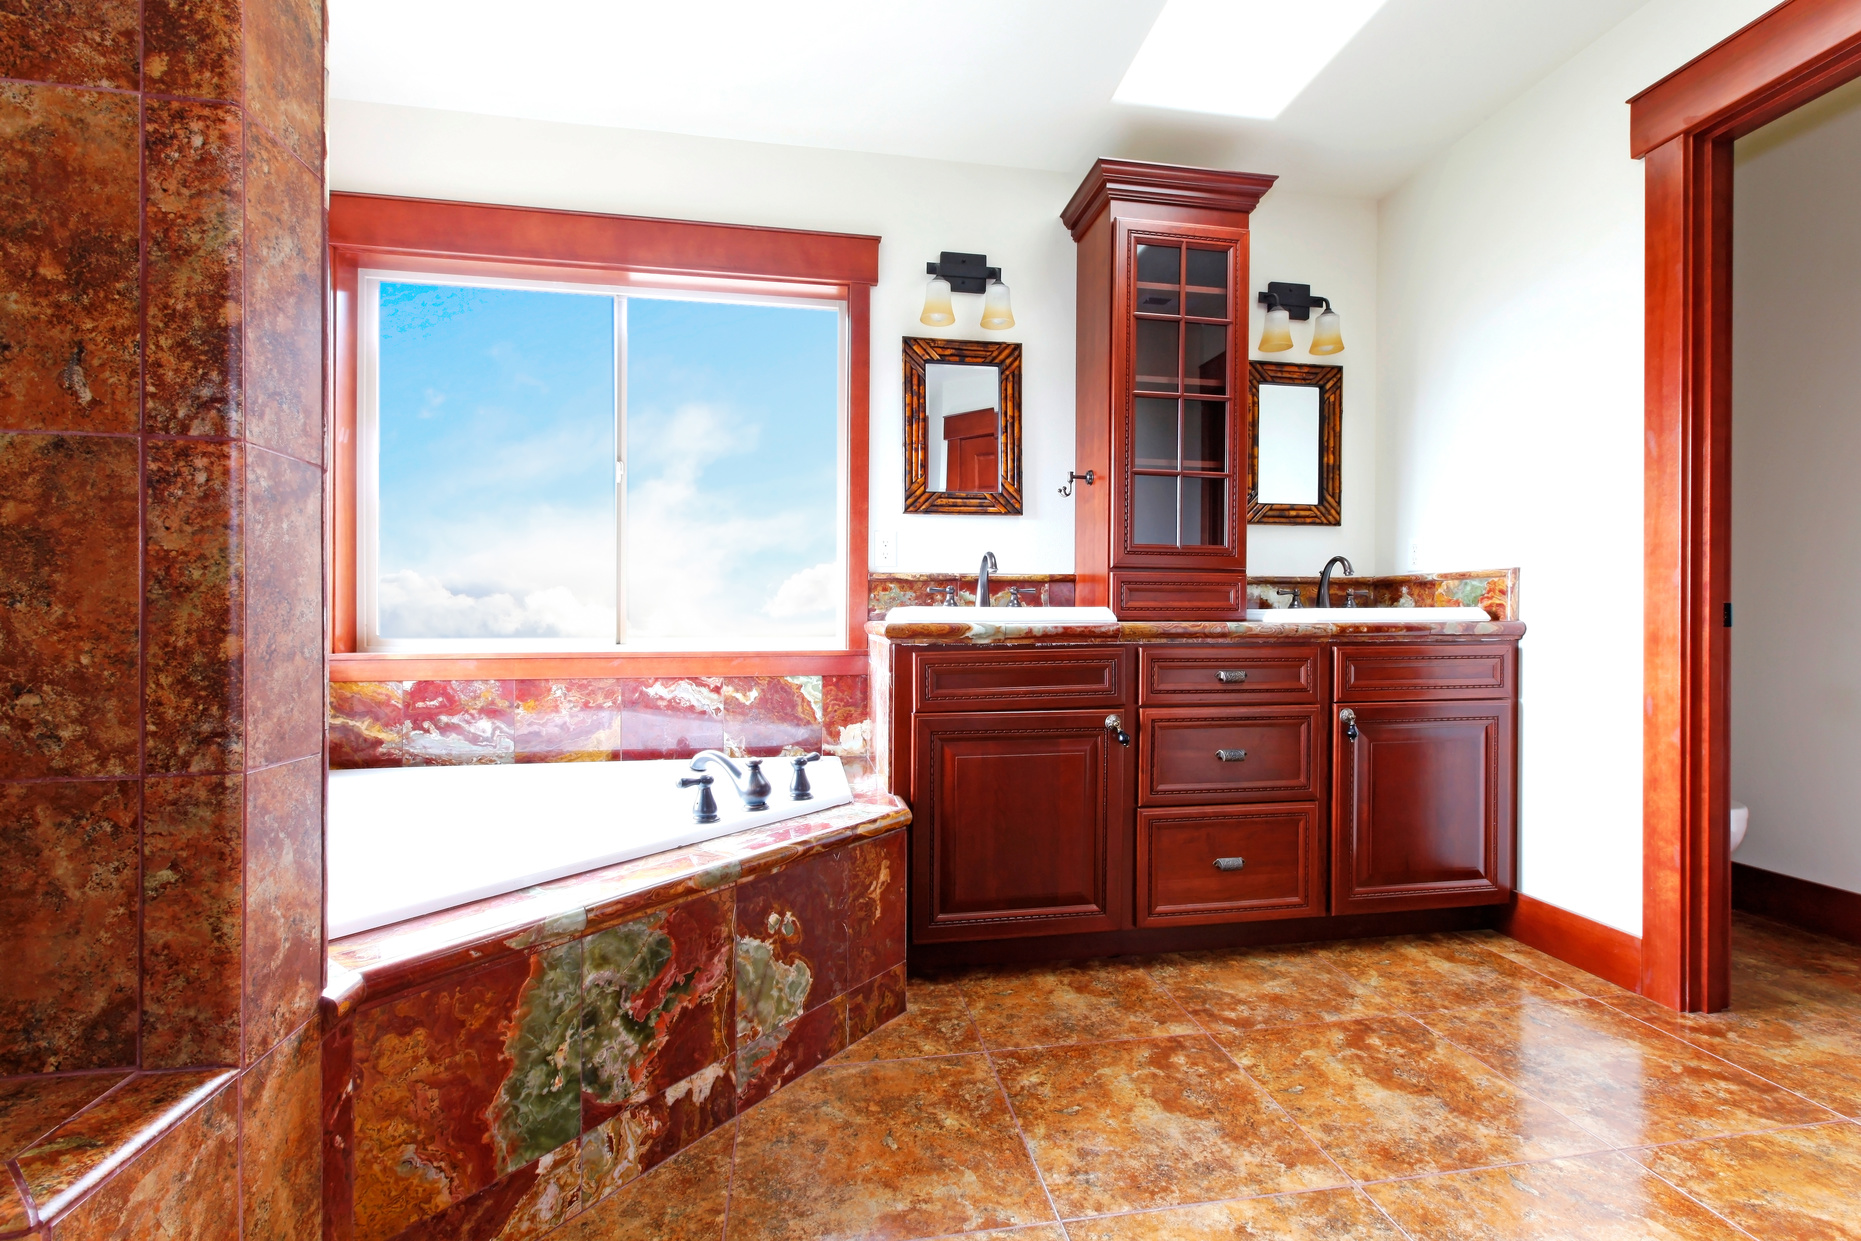 038404563-luxury-new-home-bathroom-red-m.jpeg